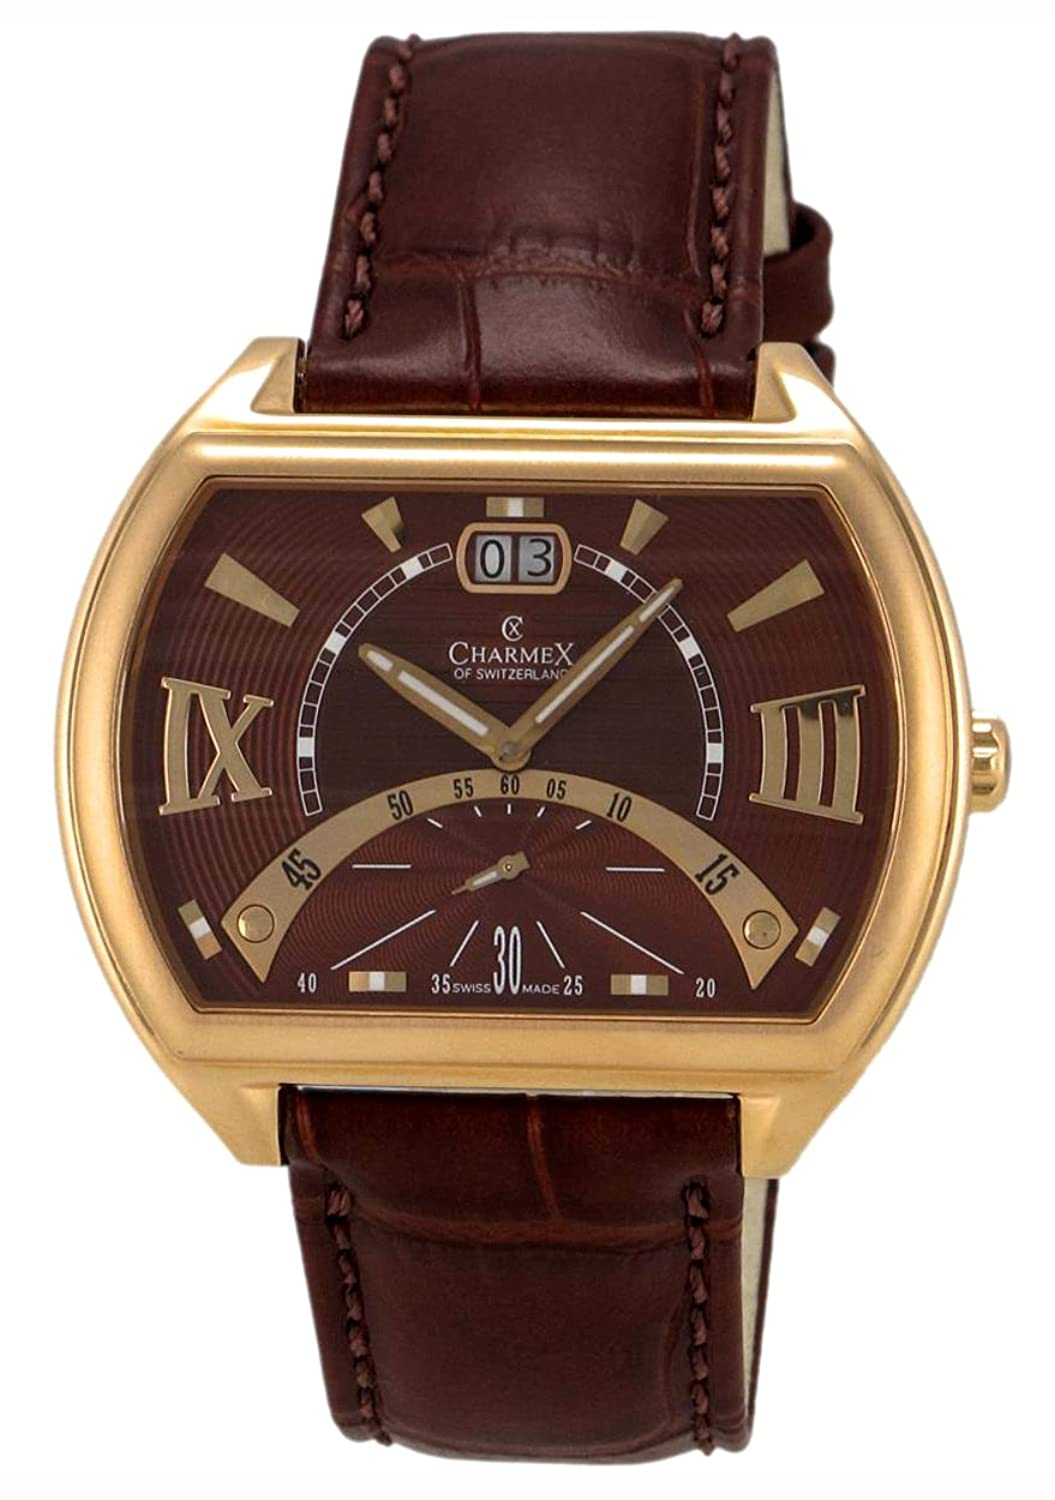 Charmex of Switzerland Monte Carlo Rose Gold Plated Steel Mens Watch Metallic Brown Dial 2332